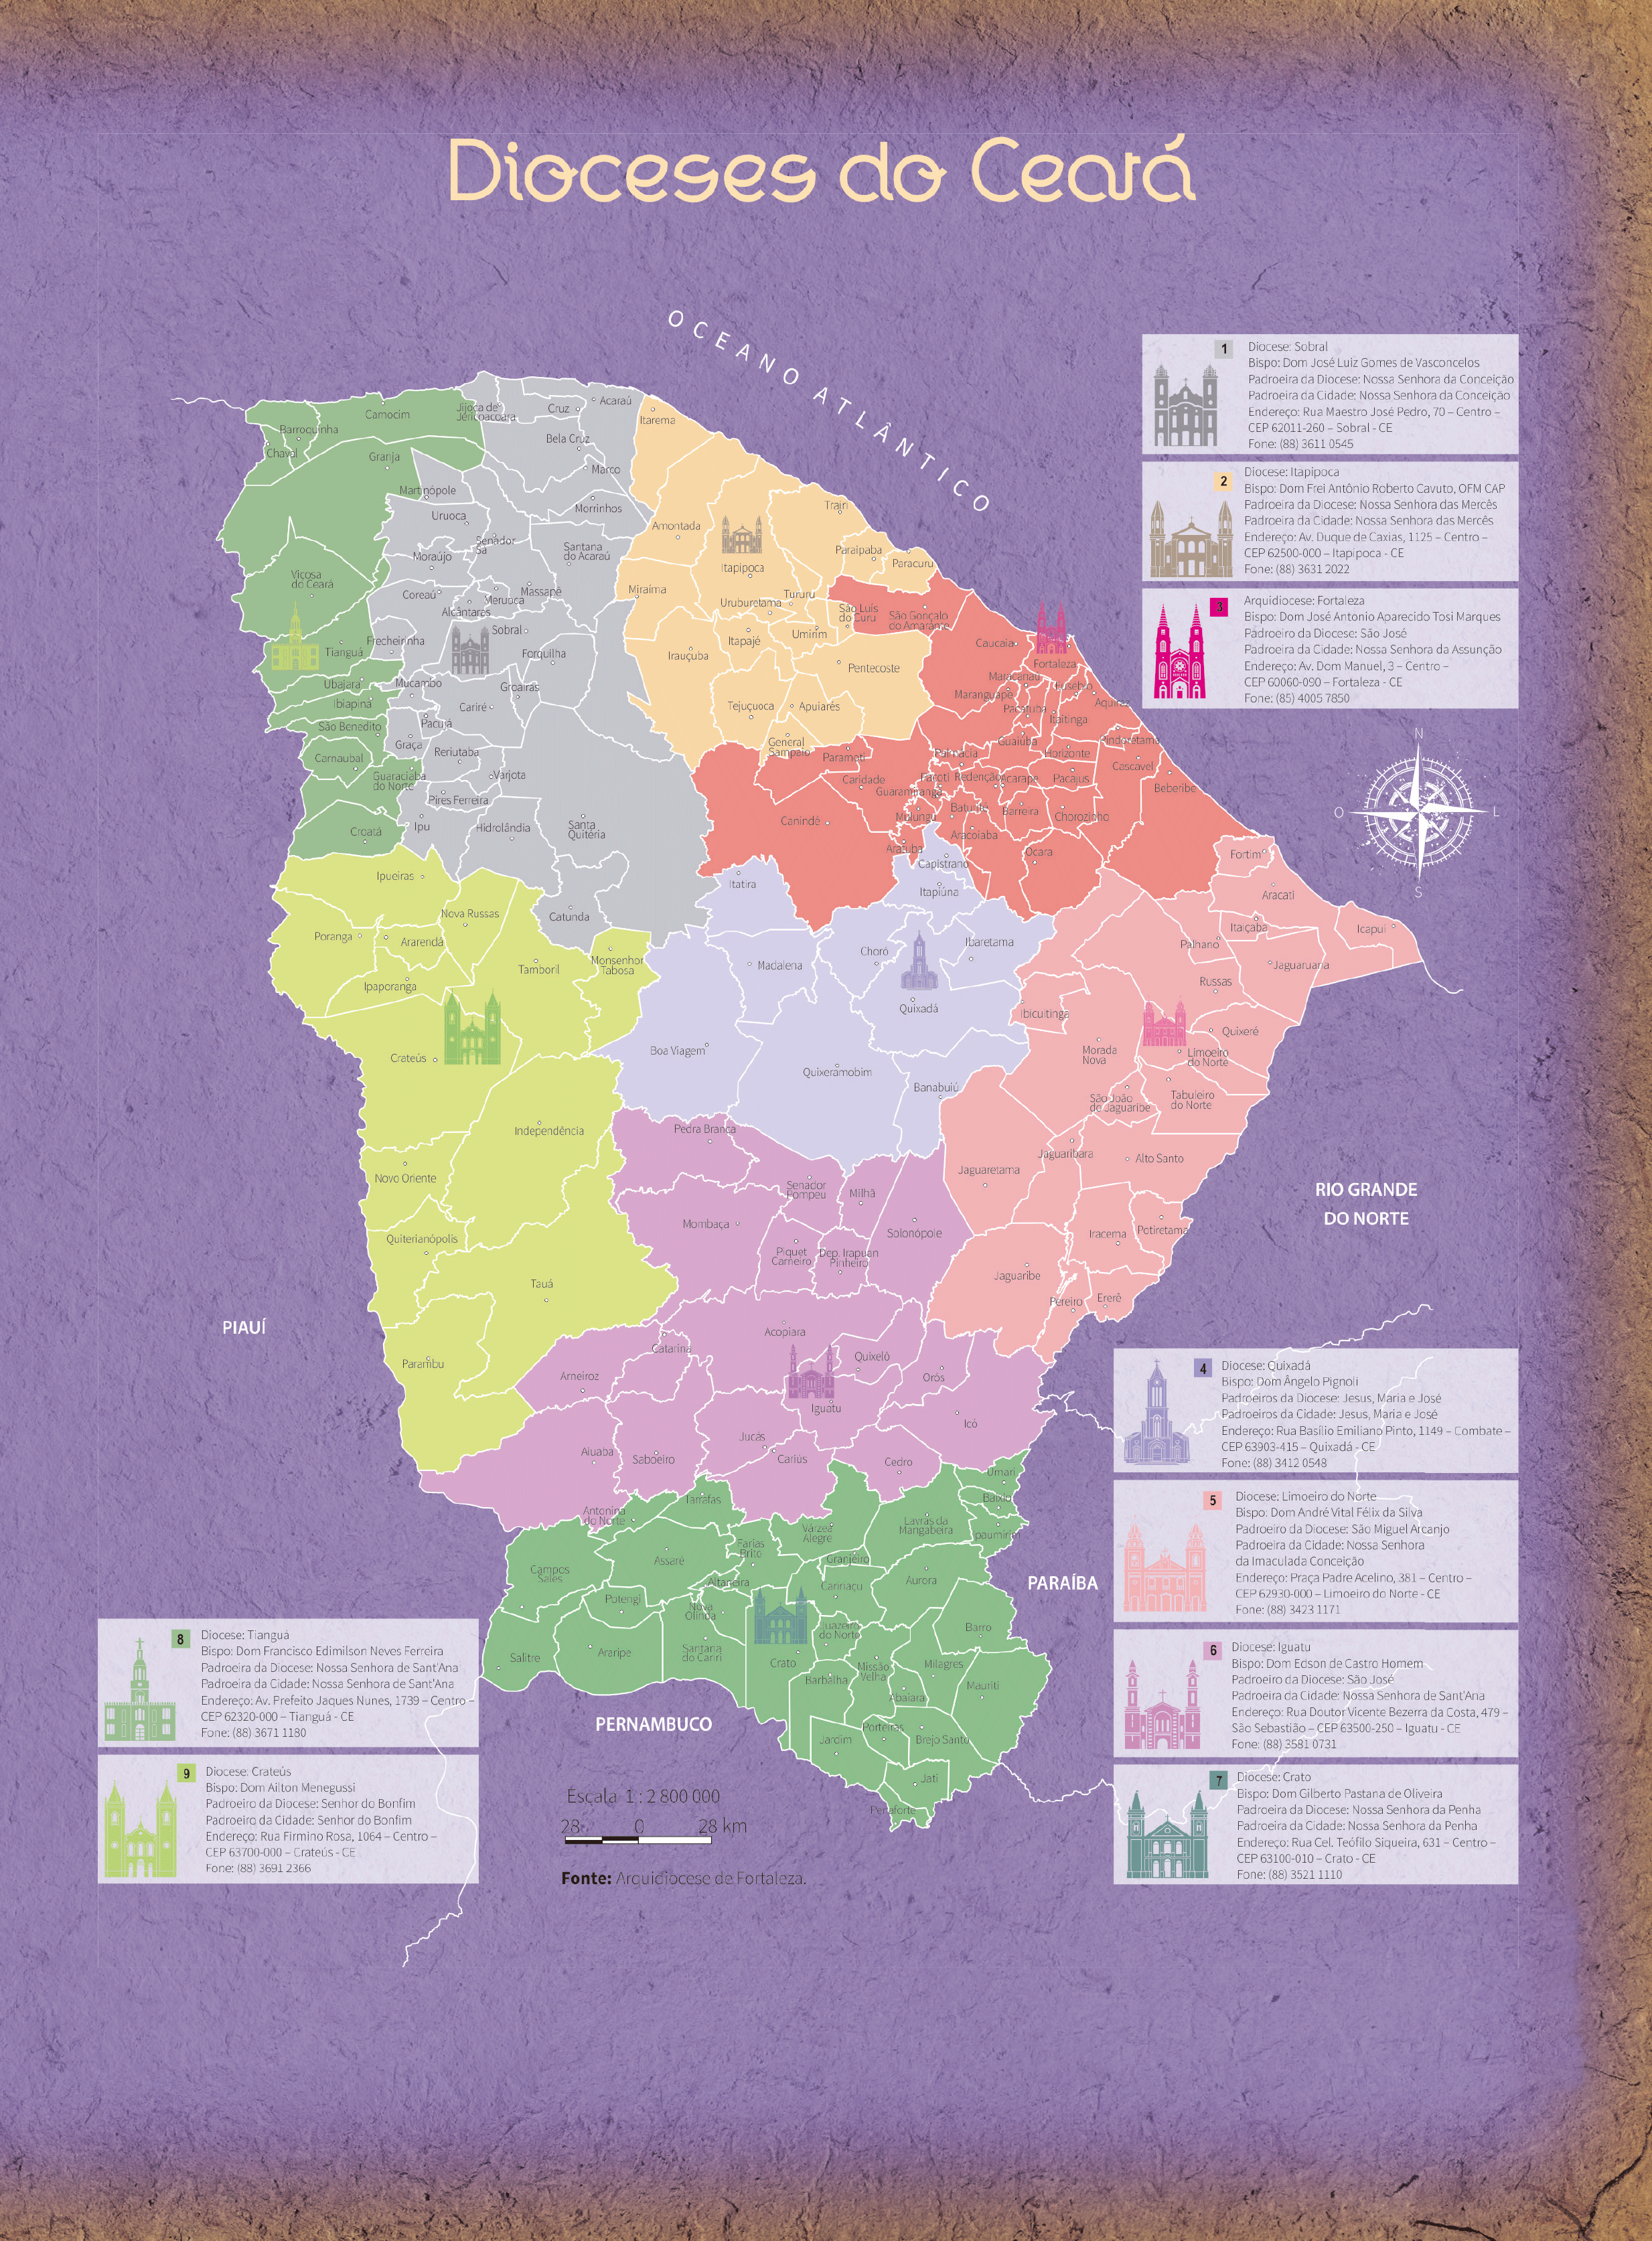 http://www.anuariodoceara.com.br/wp-content/uploads/2019/07/mapa-dioceses-2.png